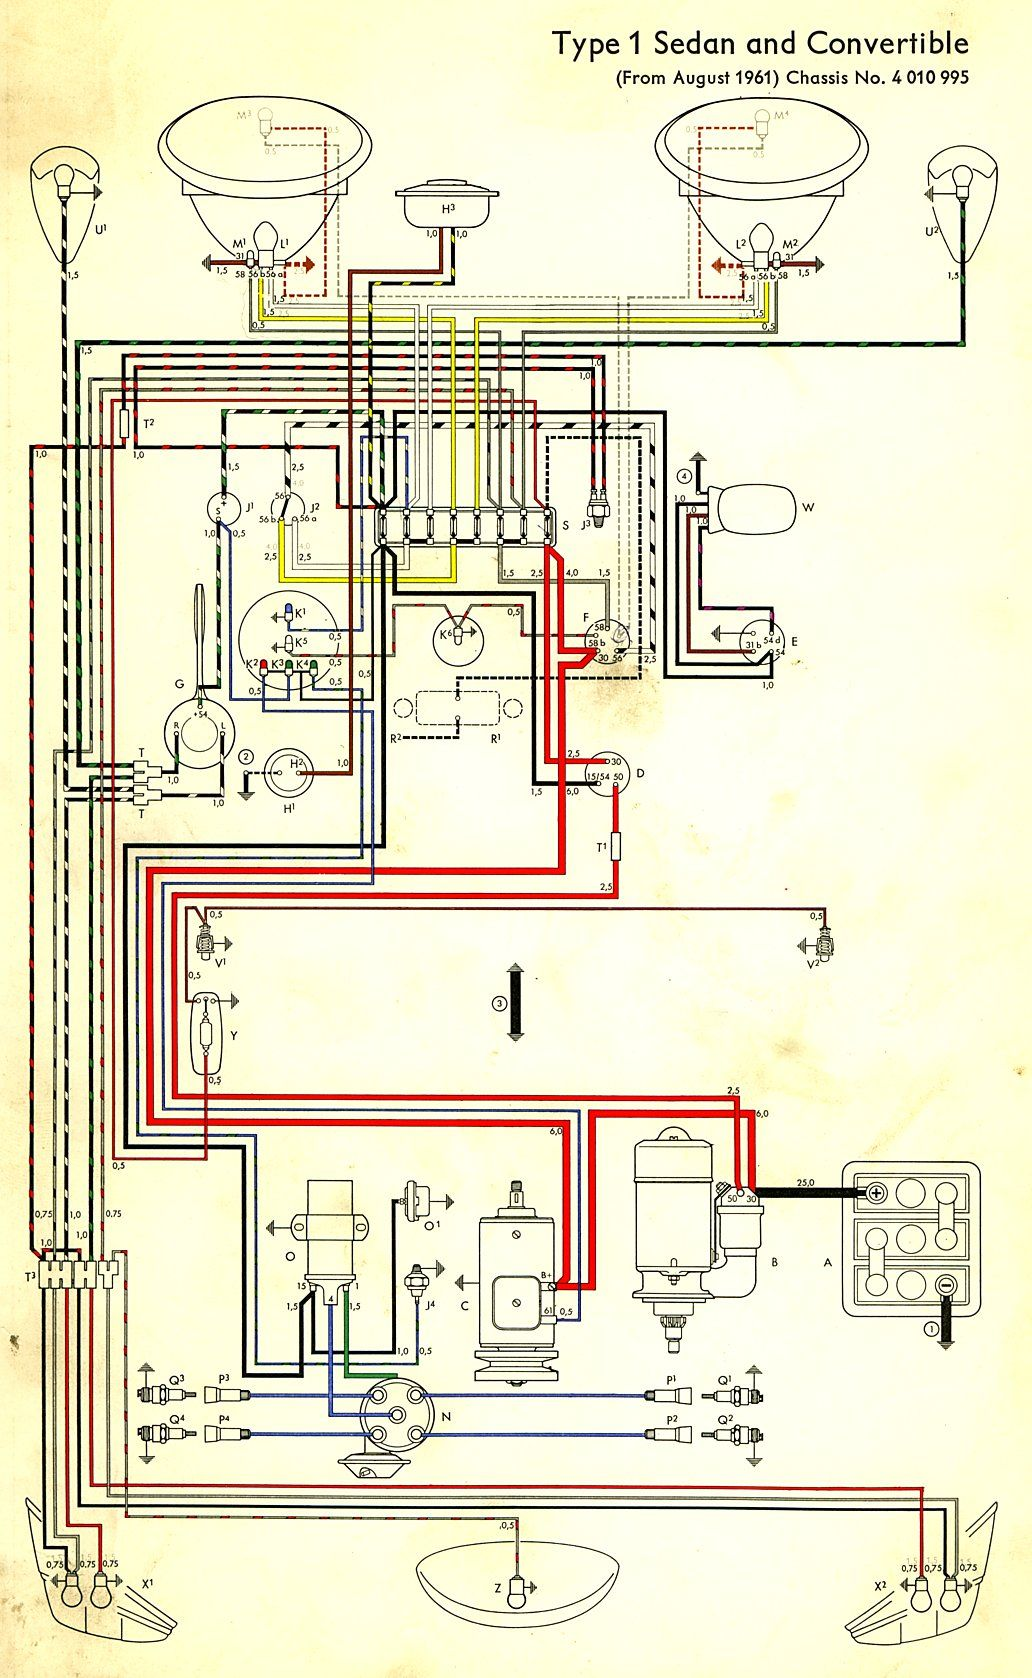 vw 1600 engine diagram speakon connector wiring data in color 1964 bug beetle convertible the samba tiguan